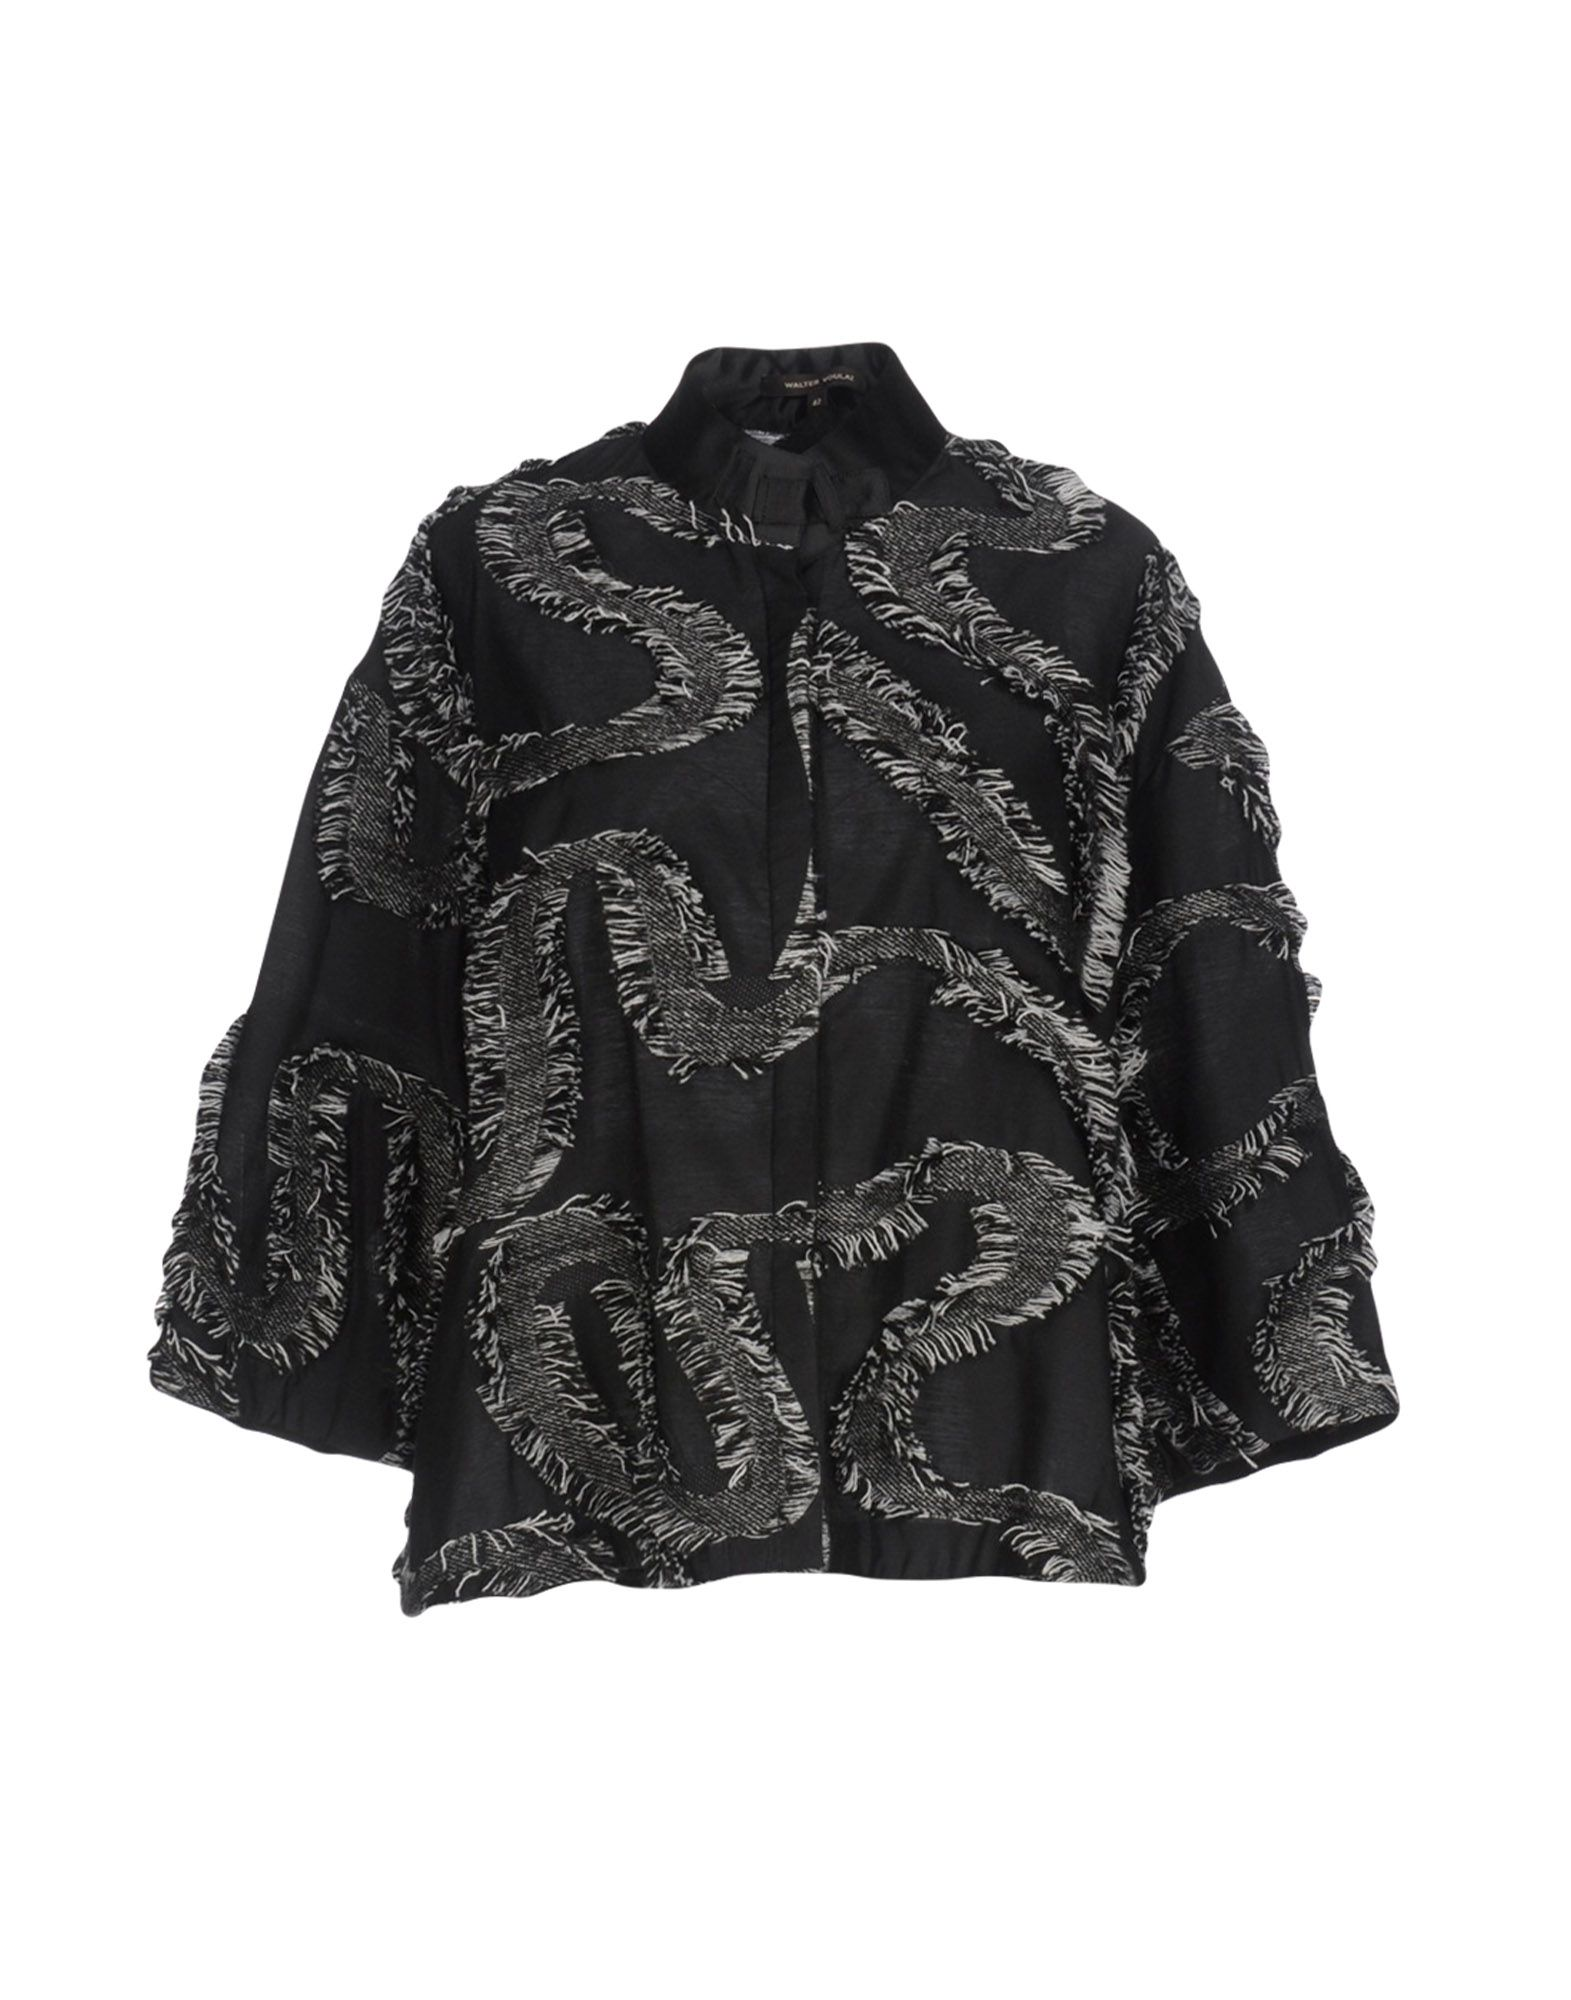 WALTER VOULAZ Patterned Shirts & Blouses in Black